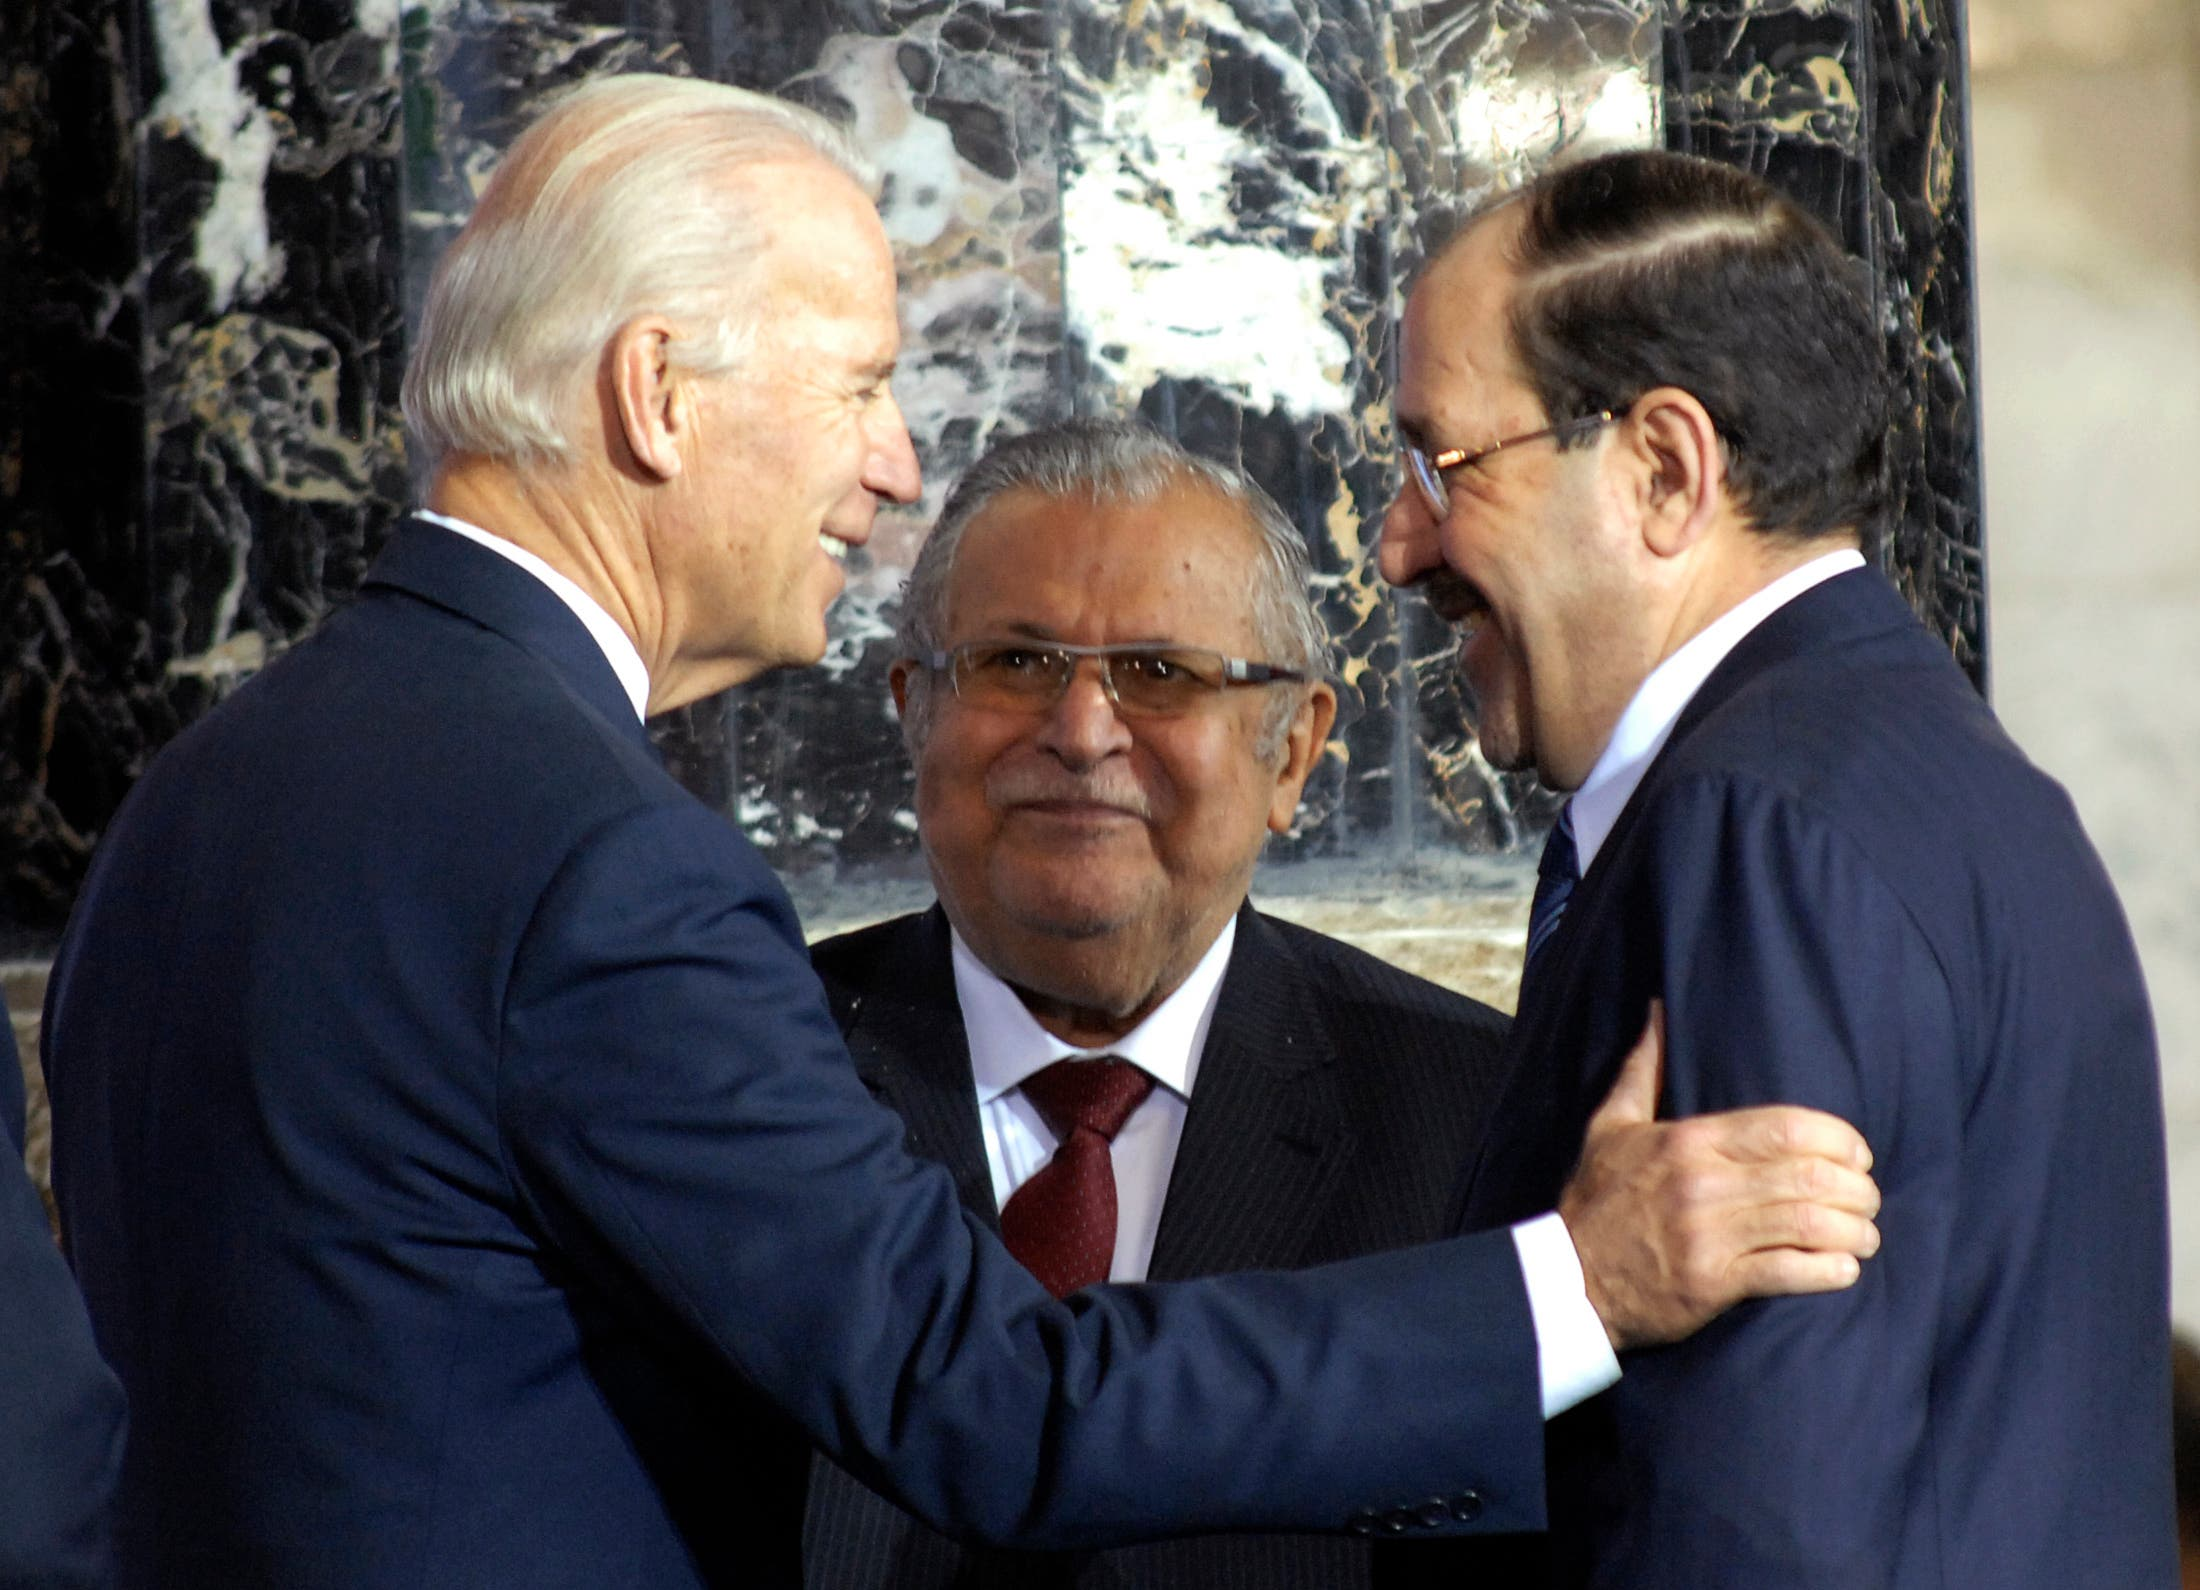 US Vice President Joe Biden (L) talks to Iraq's Prime Minister Nuri al-Maliki (R) and Iraq's President Jalal Talabani during one of several planned ceremonies to mark the end of American military presence in Iraq, in Baghdad December 1, 2011. (Reuters)